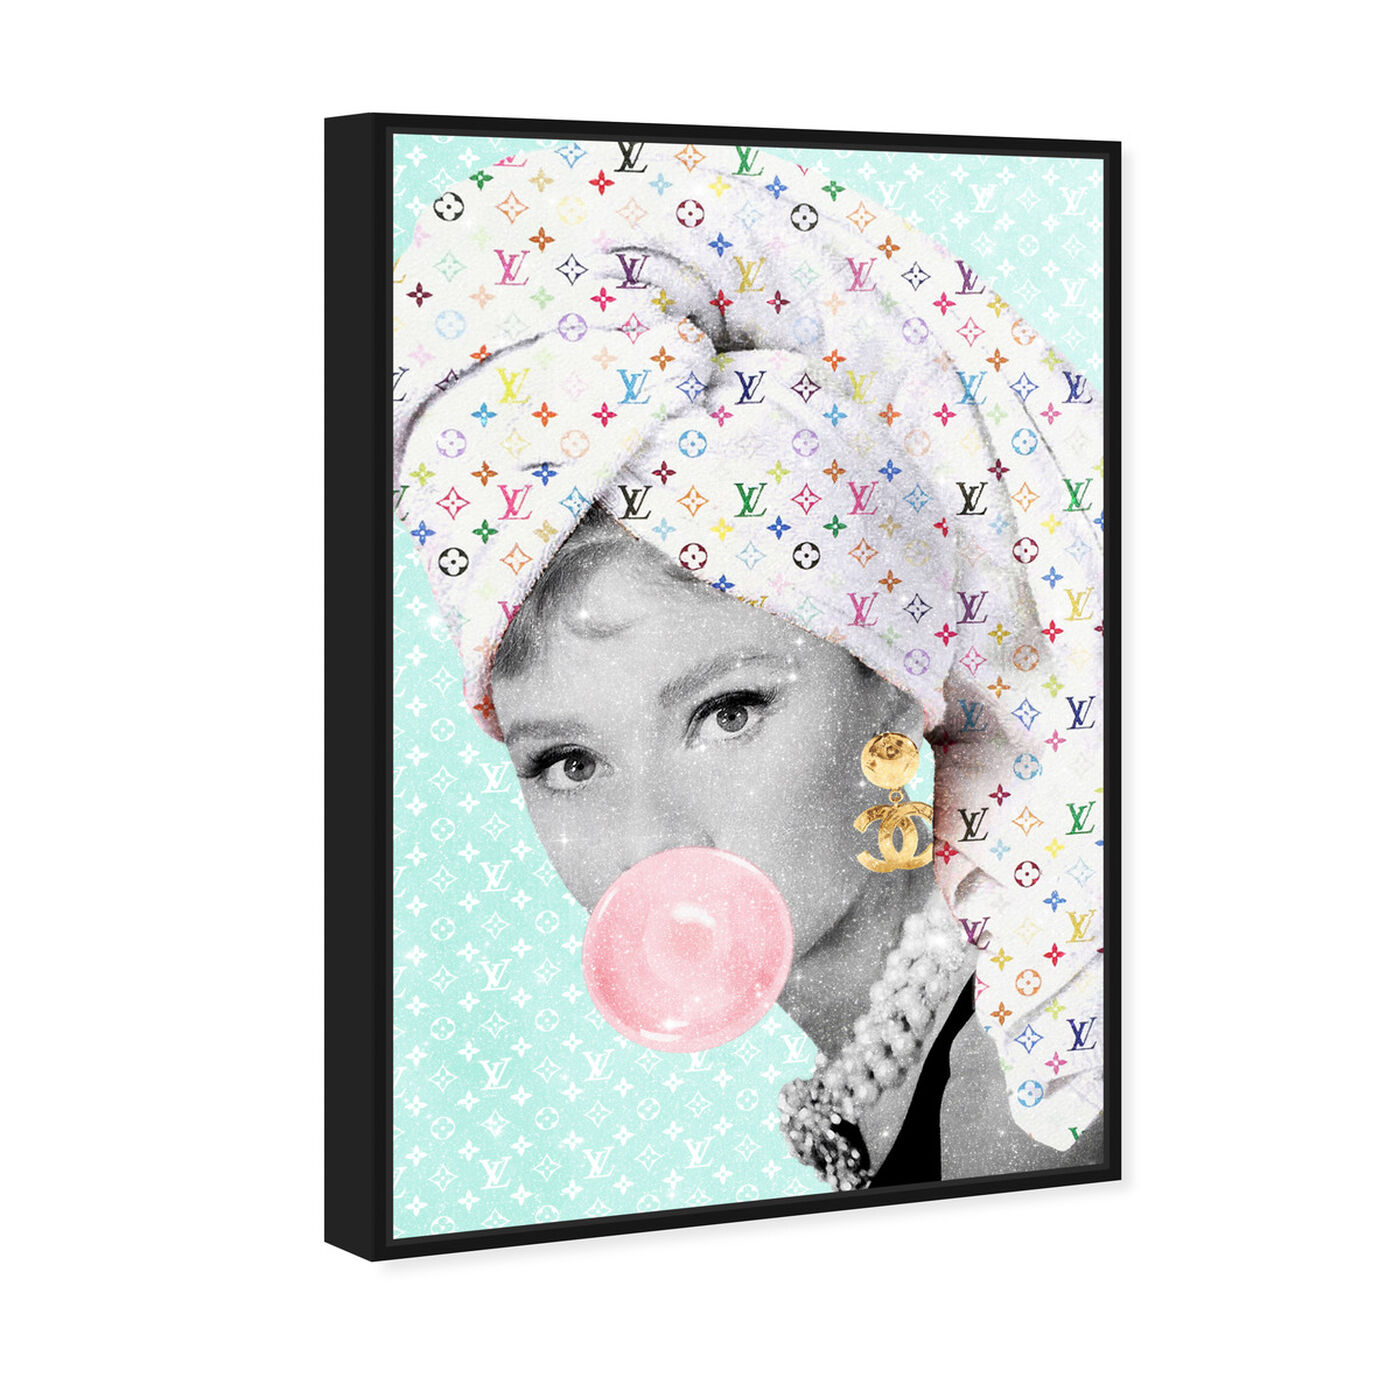 Angled view of Glam Spa Star featuring fashion and glam and portraits art.